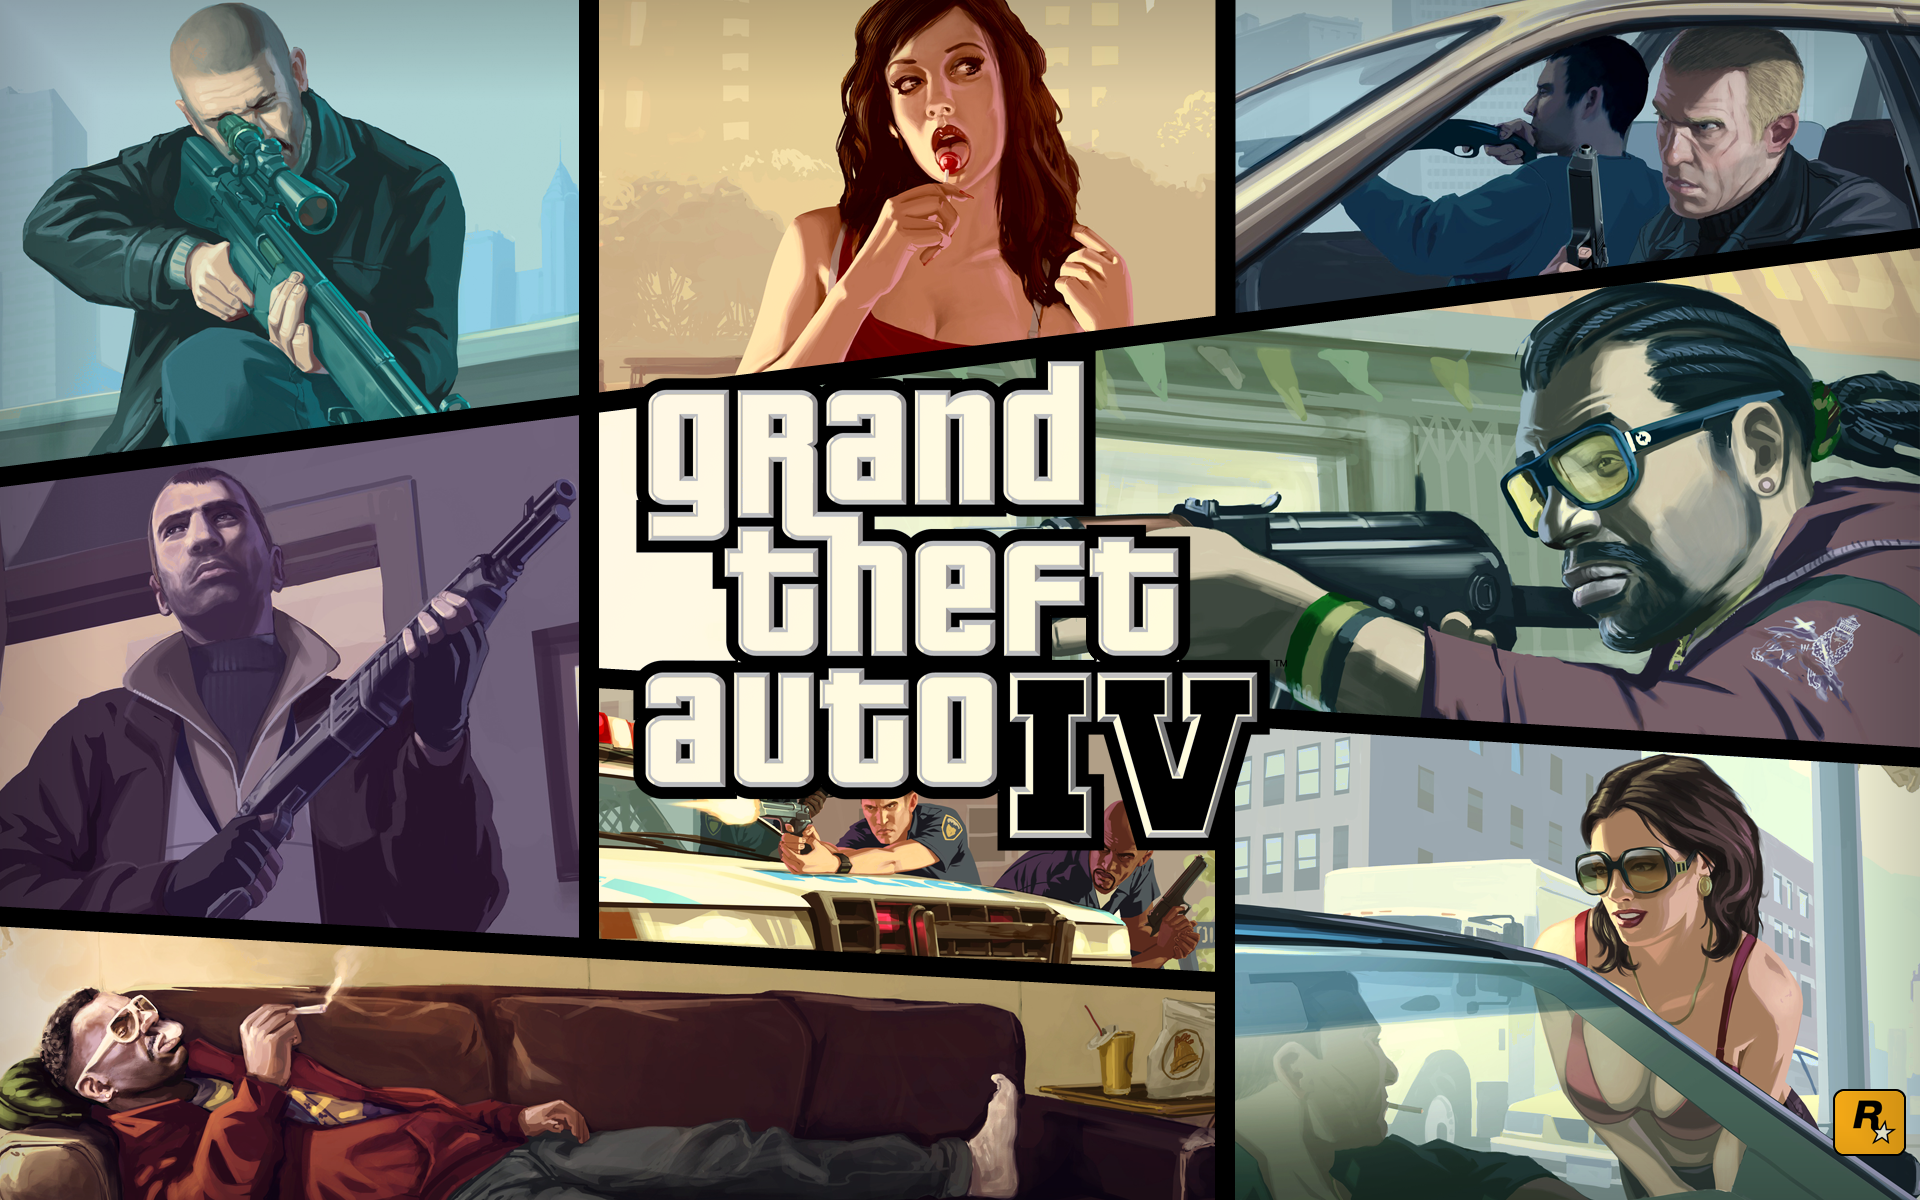 Grand Theft Auto IV Backgrounds, Compatible - PC, Mobile, Gadgets| 1920x1200 px